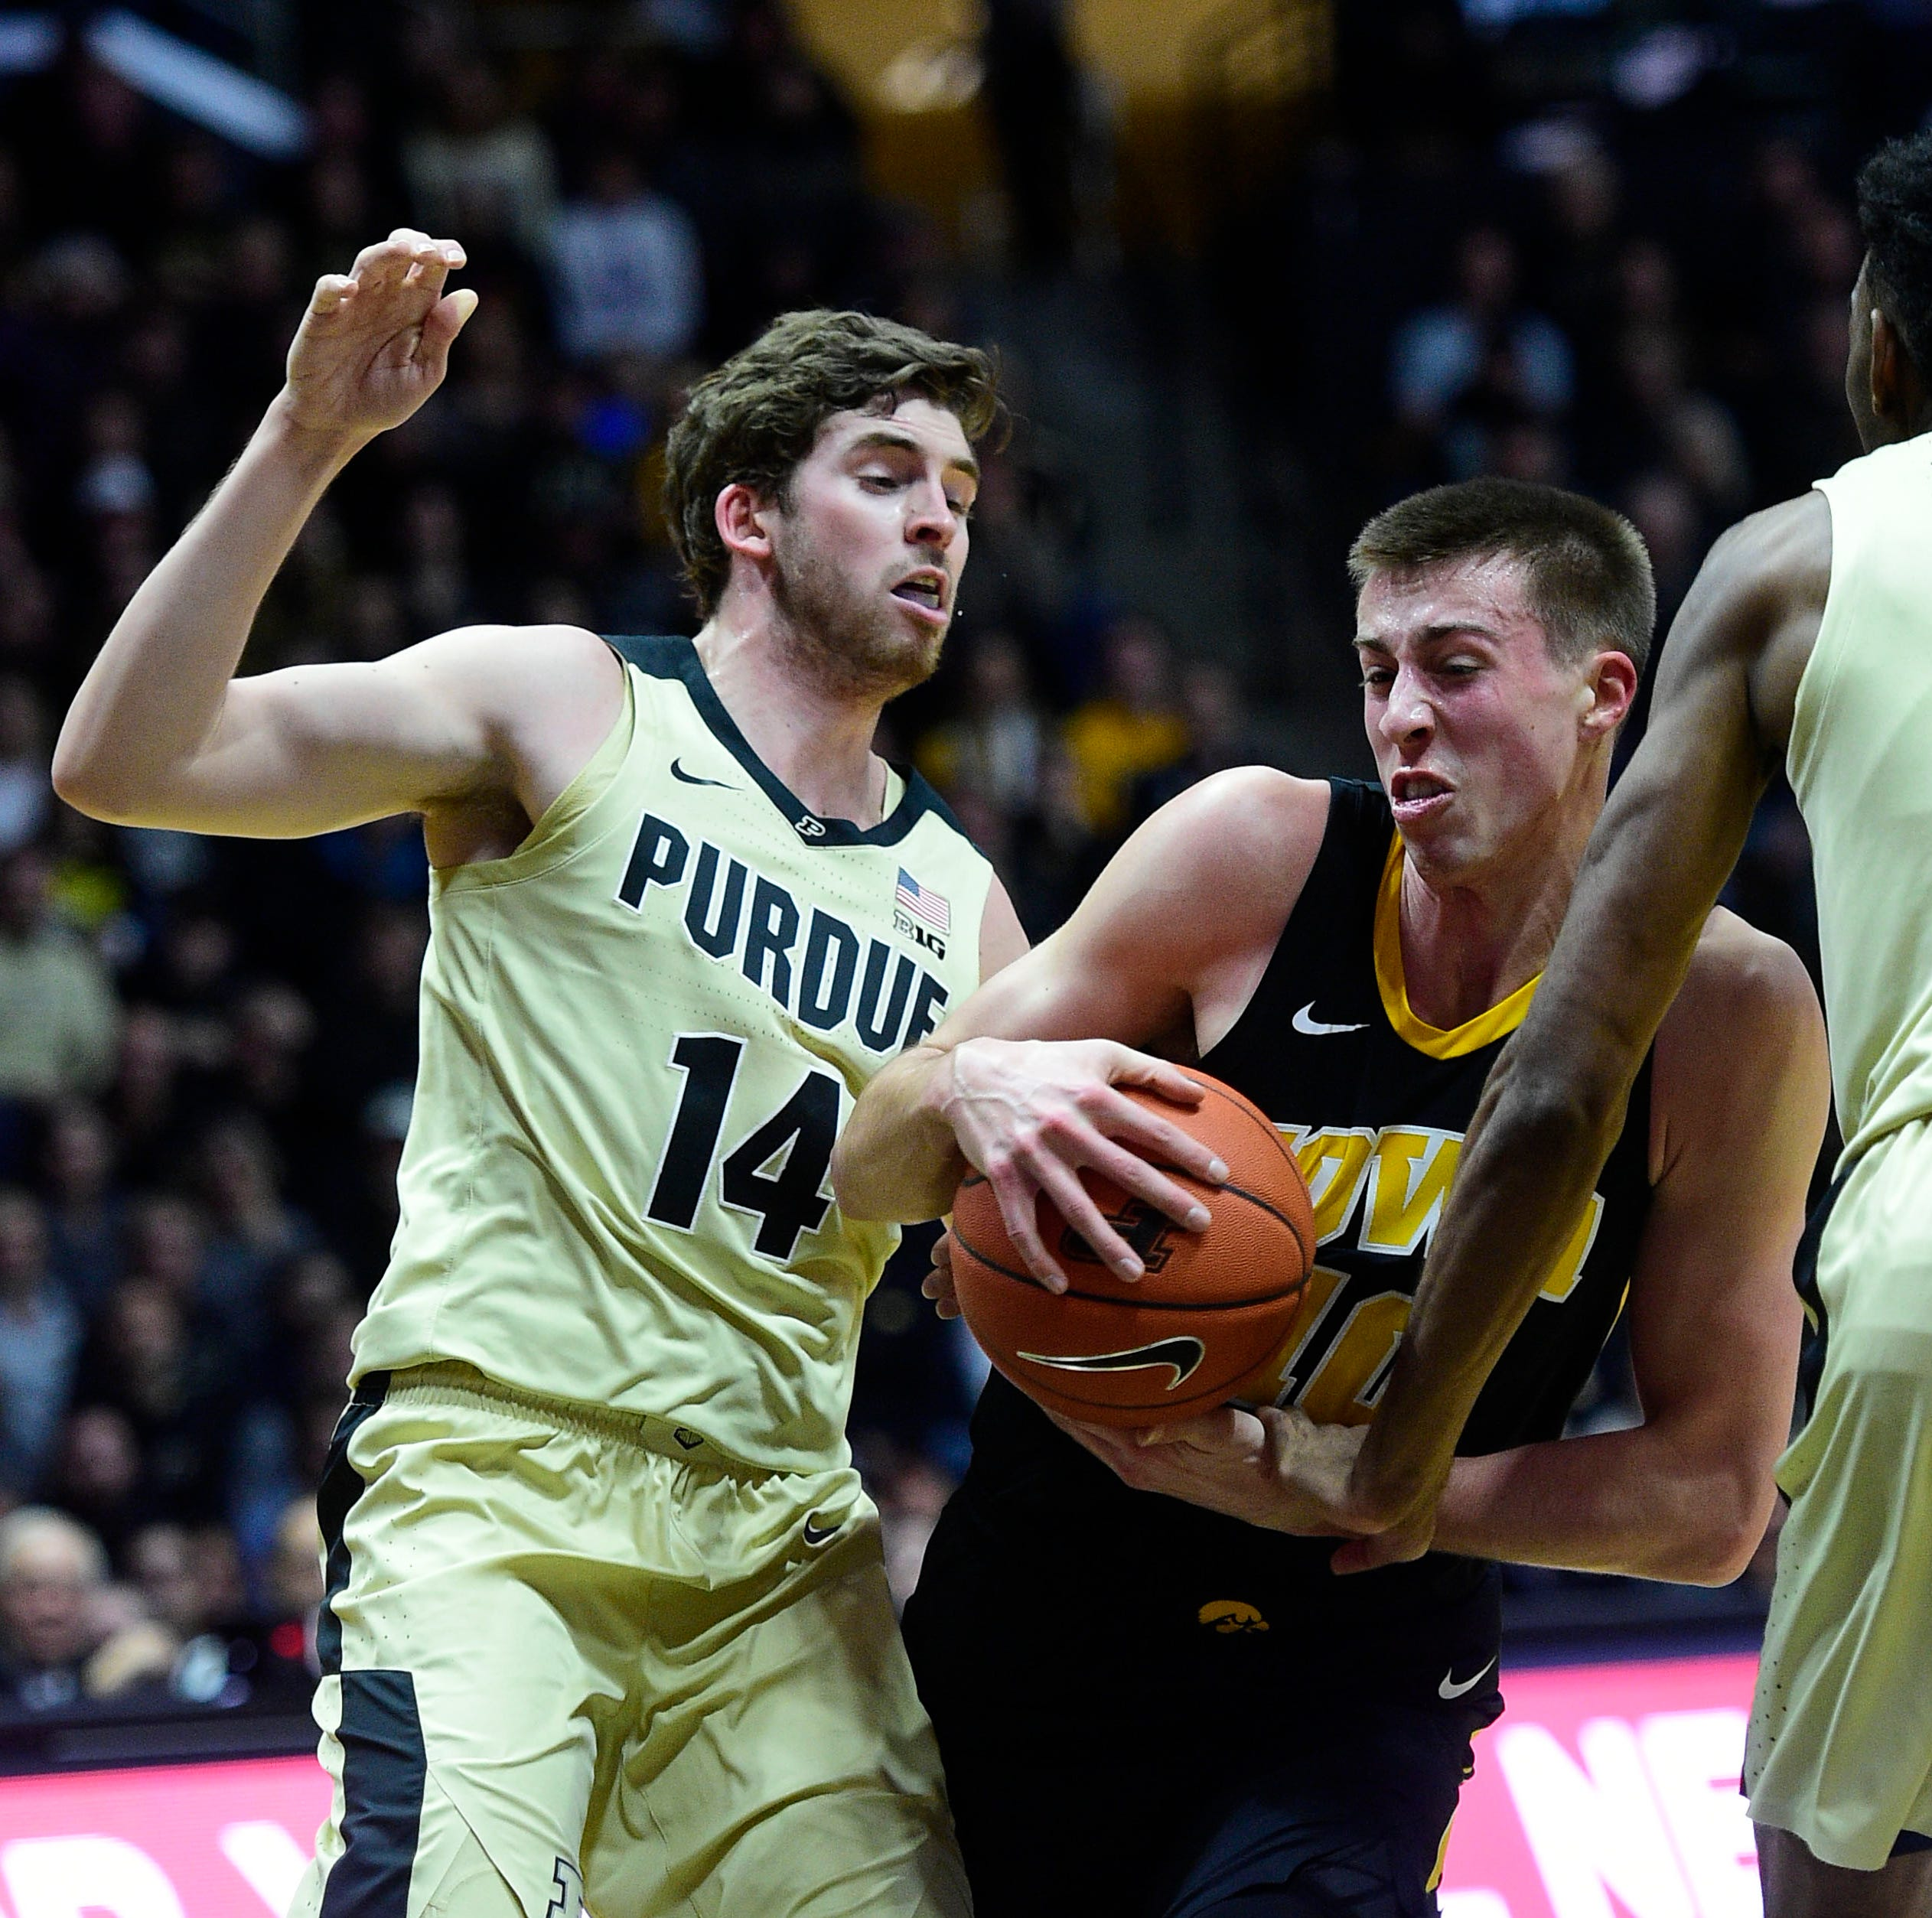 Purdue men's basketball turning a corner by winning the possession battle